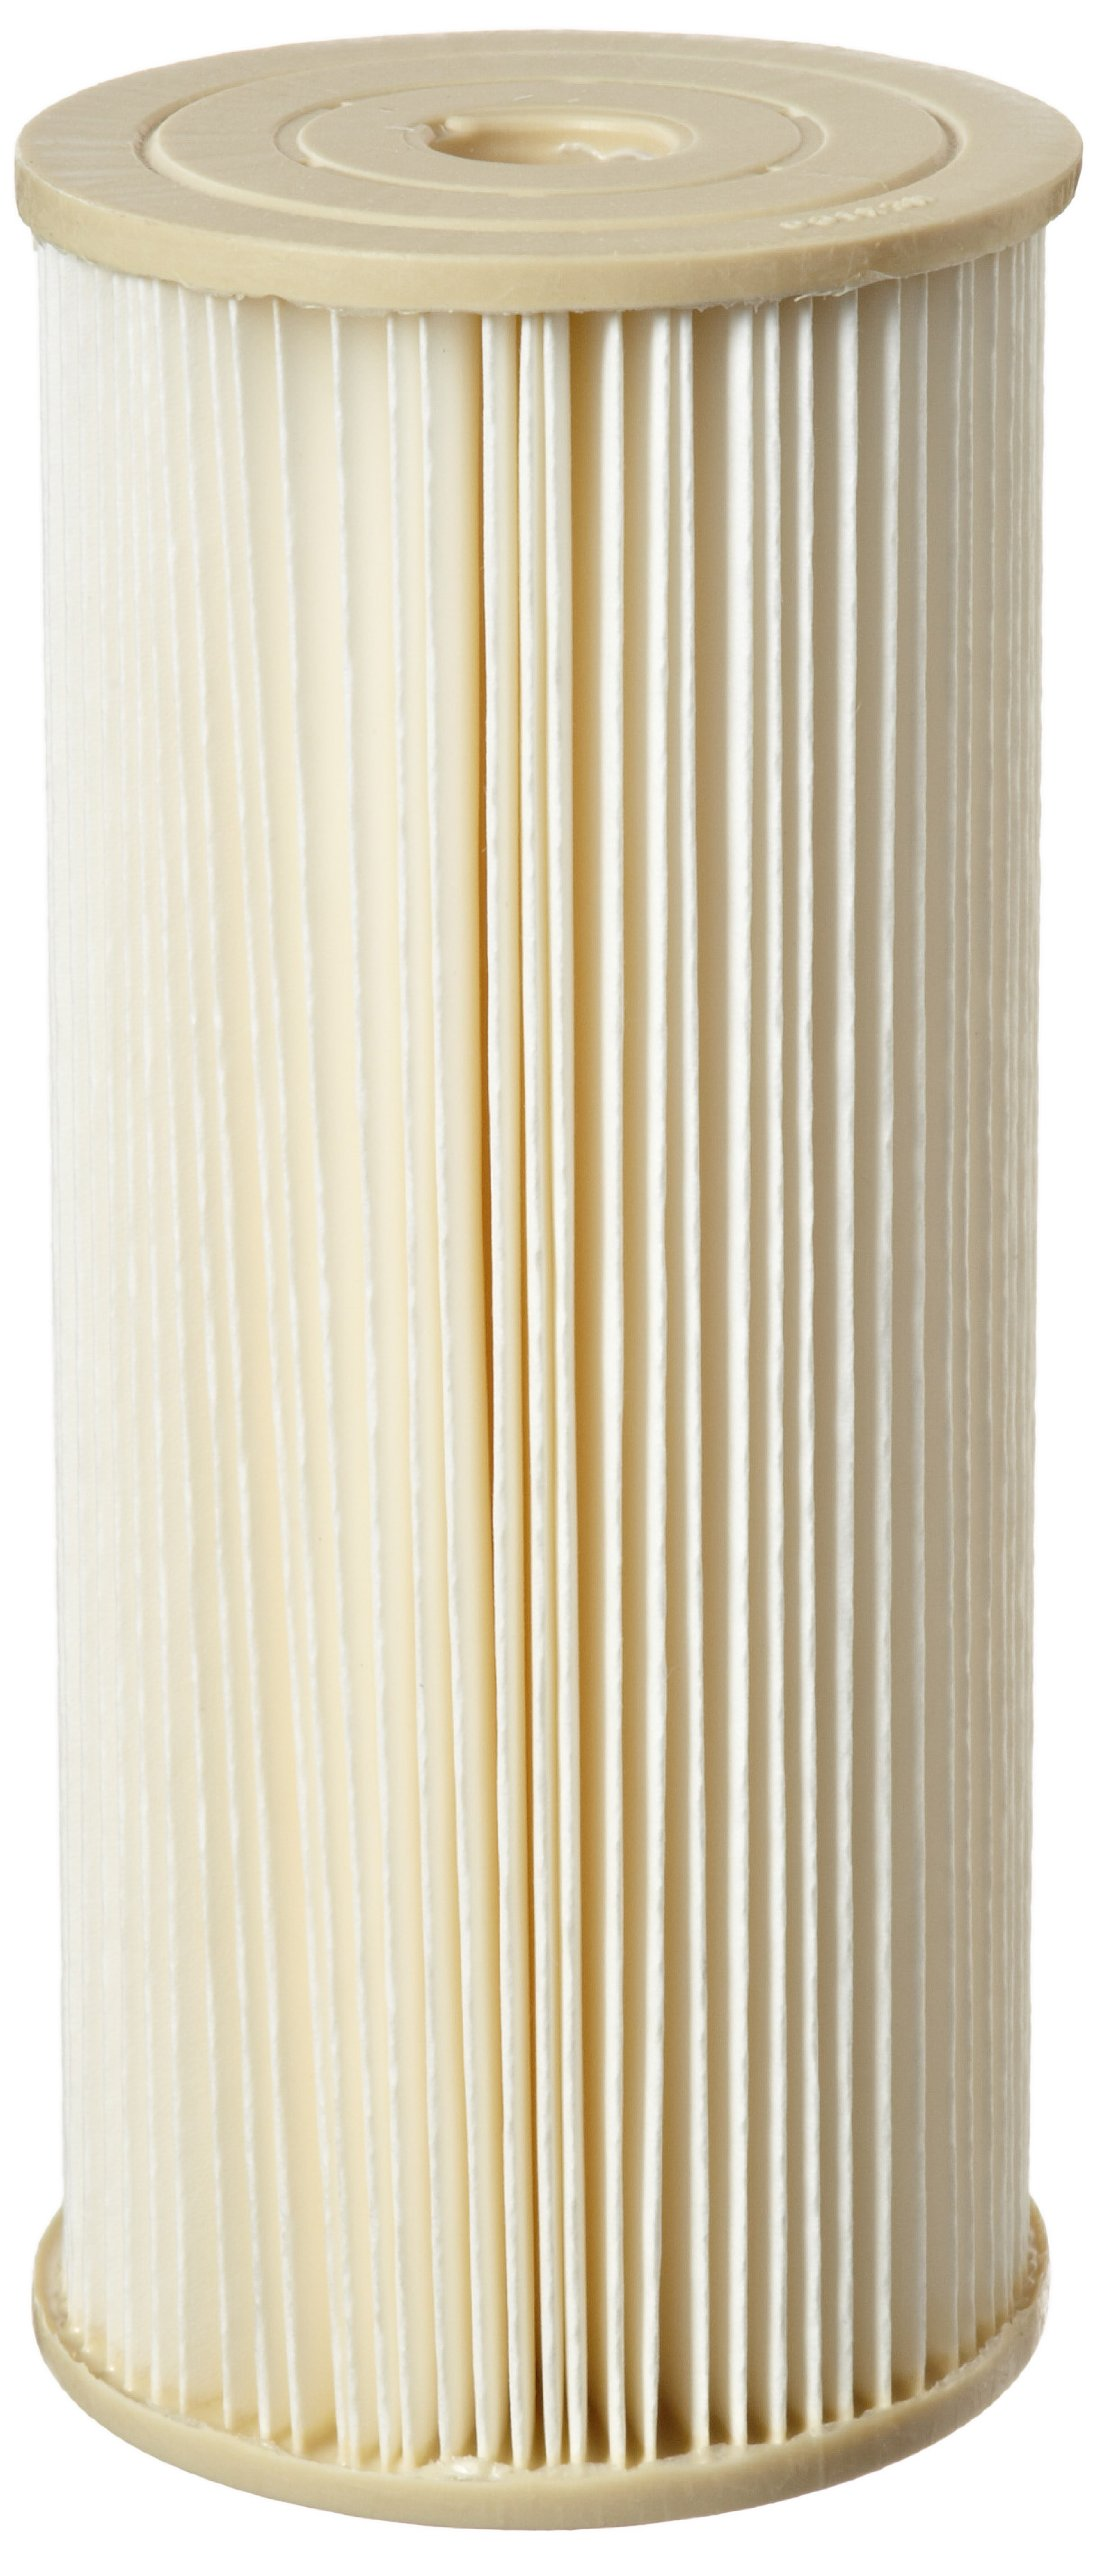 Pentek ECP1-BB Pleated Cellulose Polyester Filter Cartridge, 9-3/4'' x 4-1/2'', 1 Micron